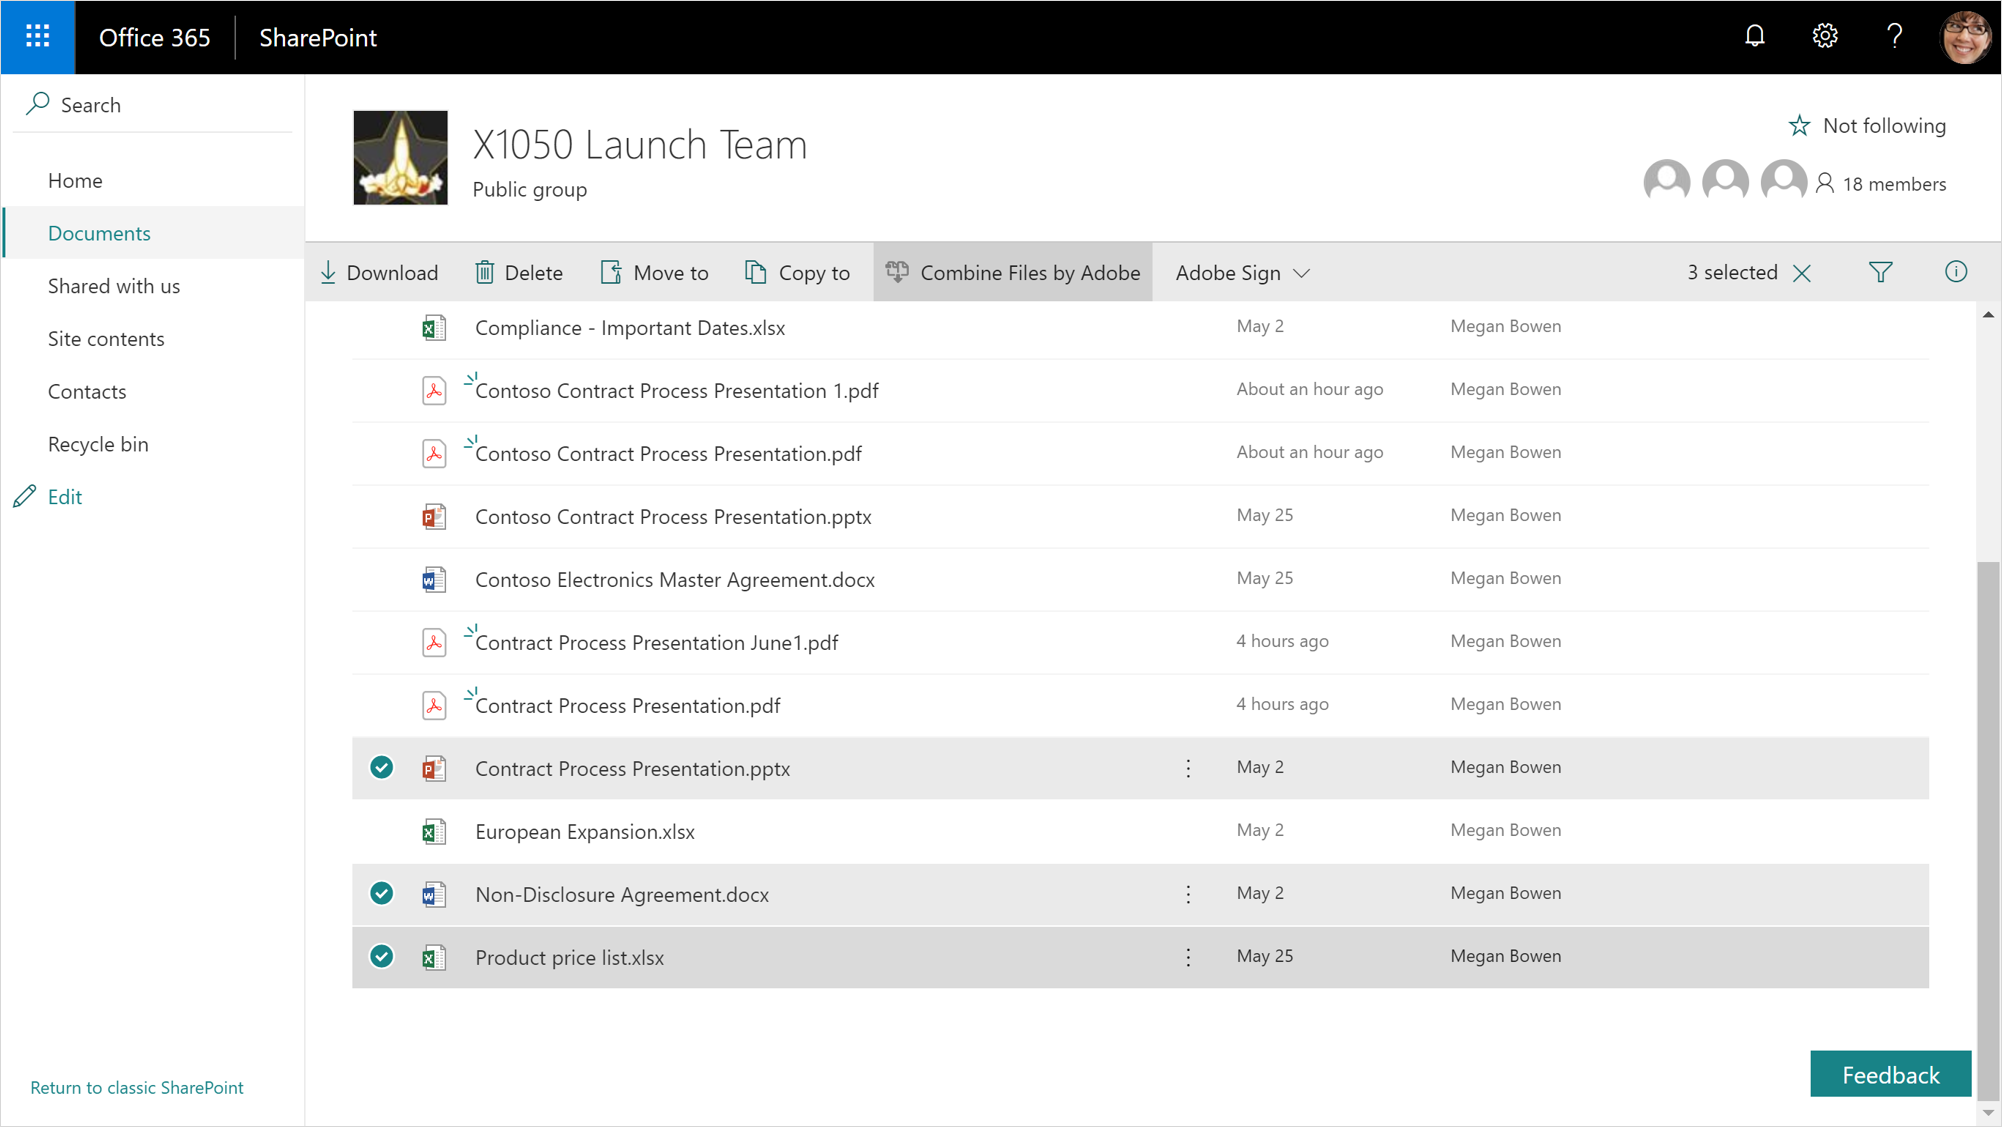 A screenshot displays a launch team group in SharePoint.